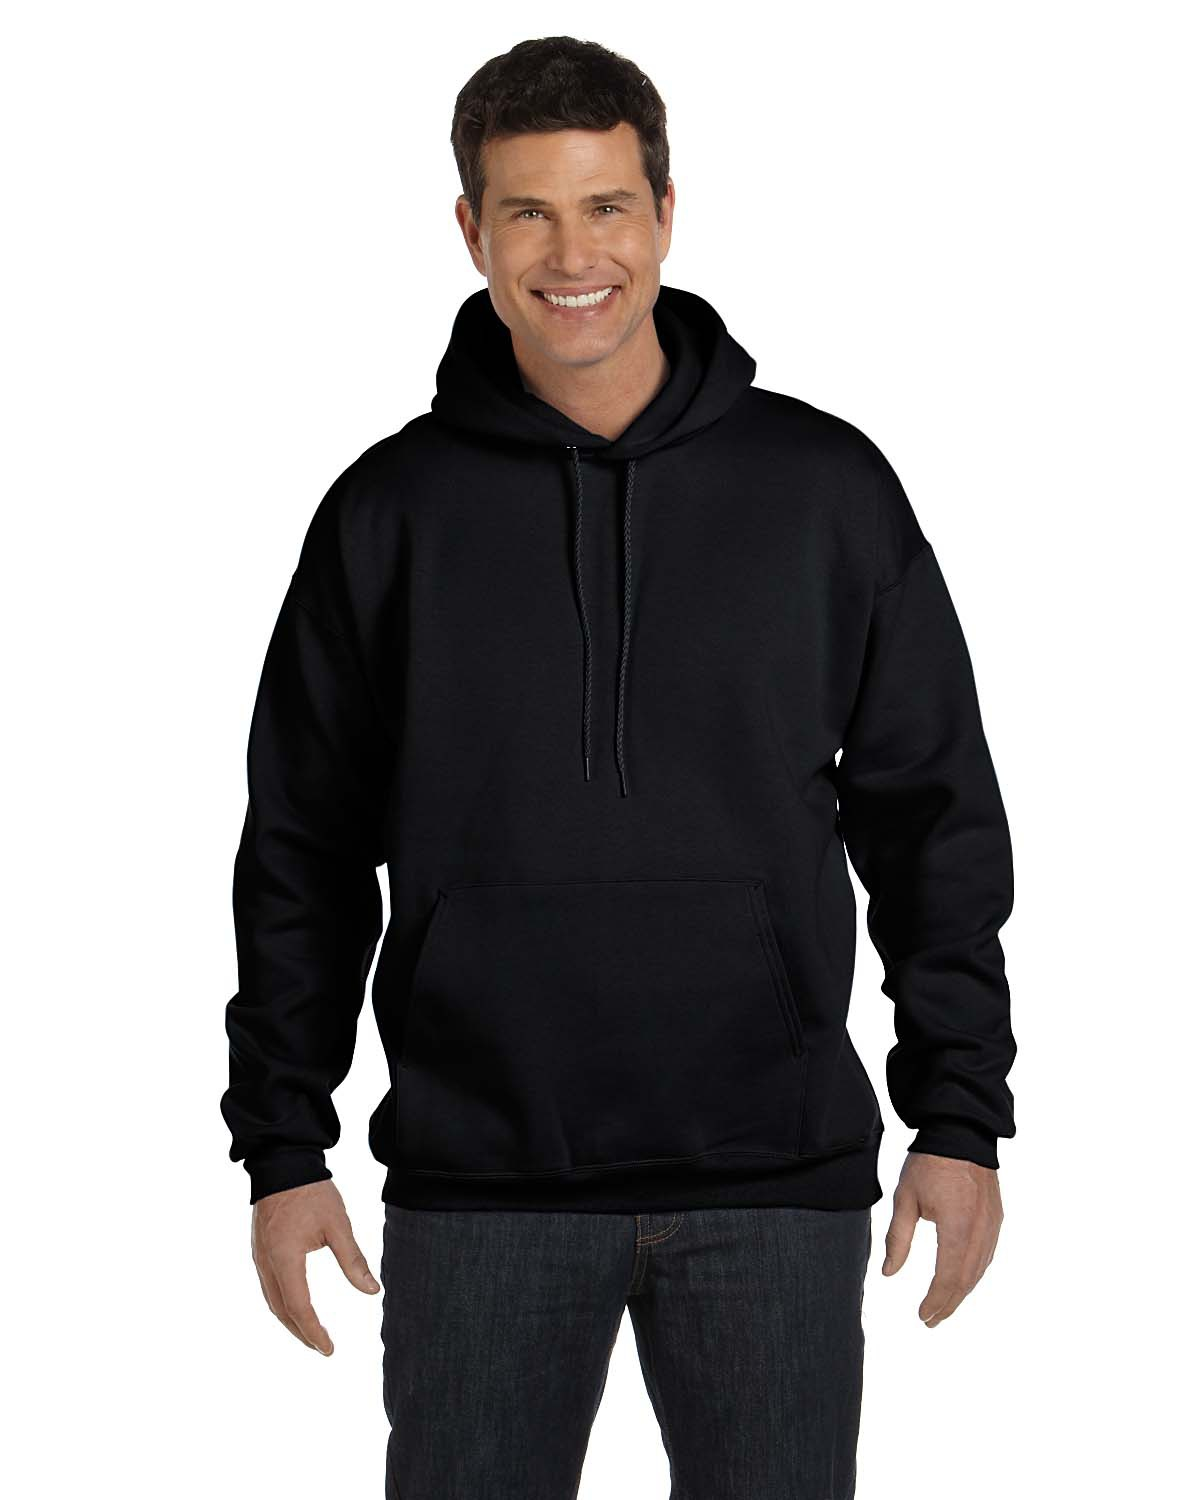 Hanes F170 - Adult Ultimate Cotton Hooded Pullover